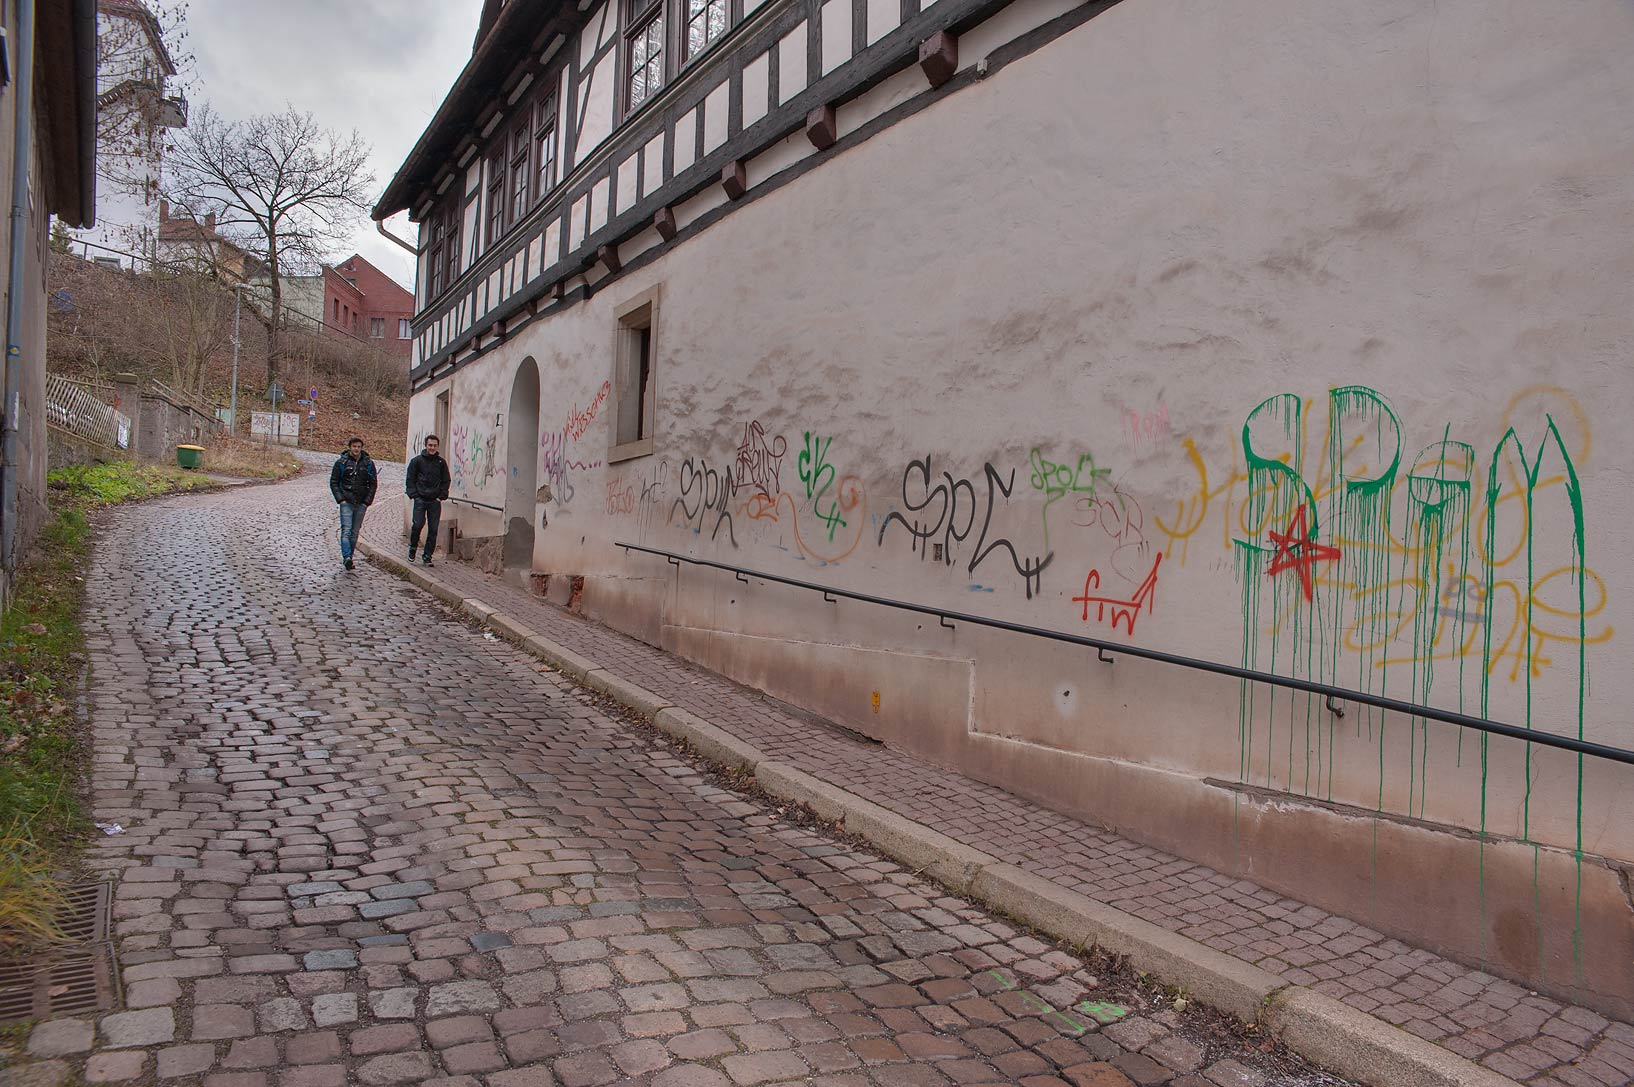 Street in Old city paved by stone. Eisenach, Germany